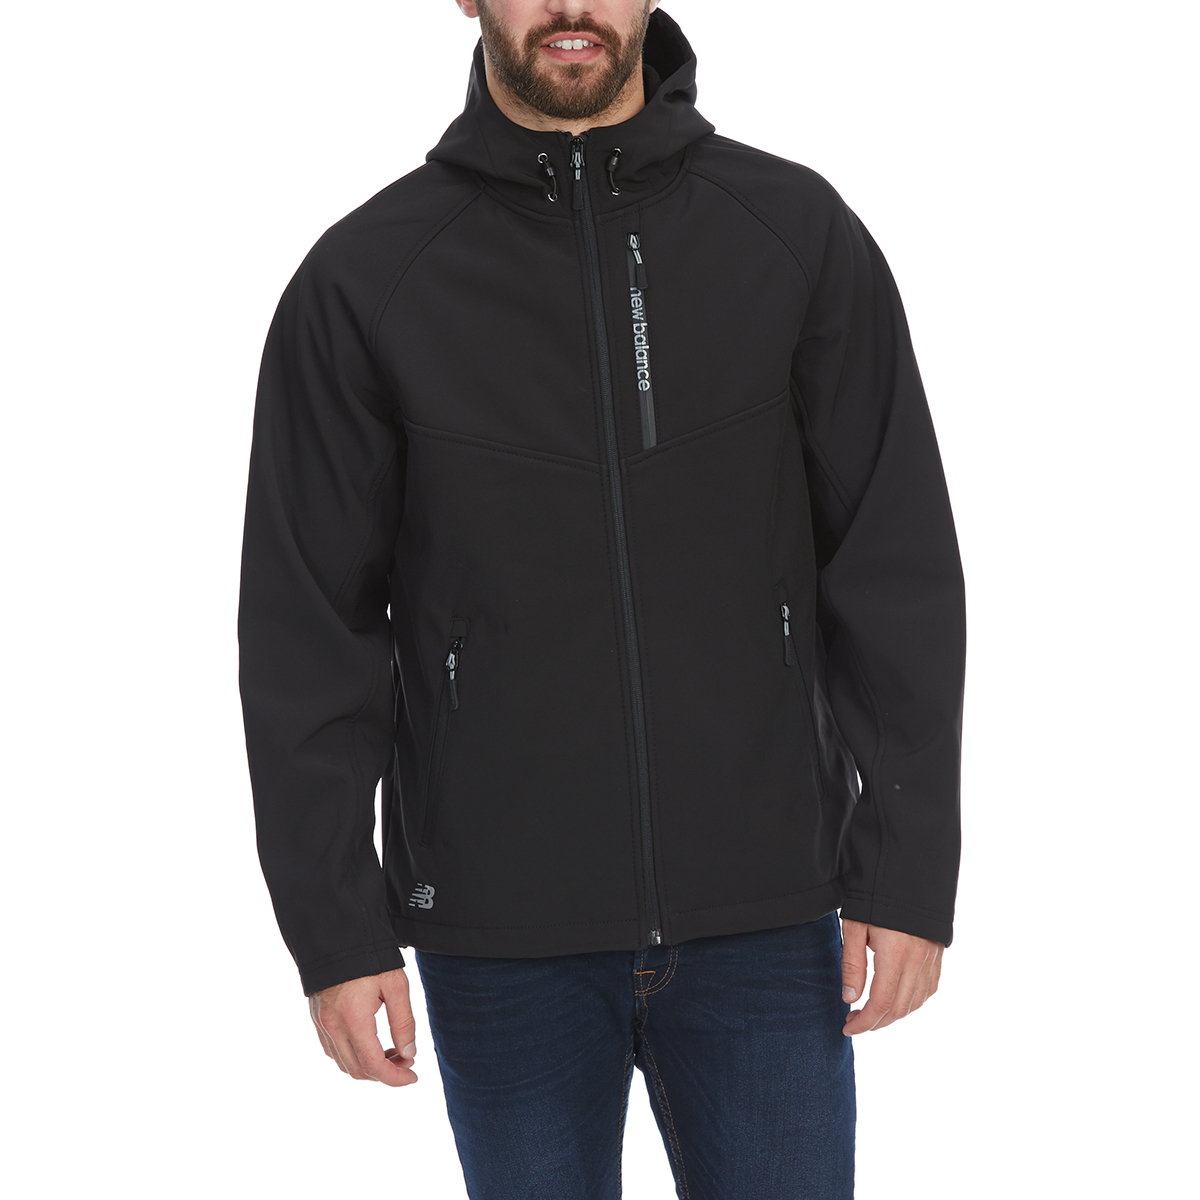 New Balance Men's Hooded Softshell Jacket With Reflective Trim - Black, L